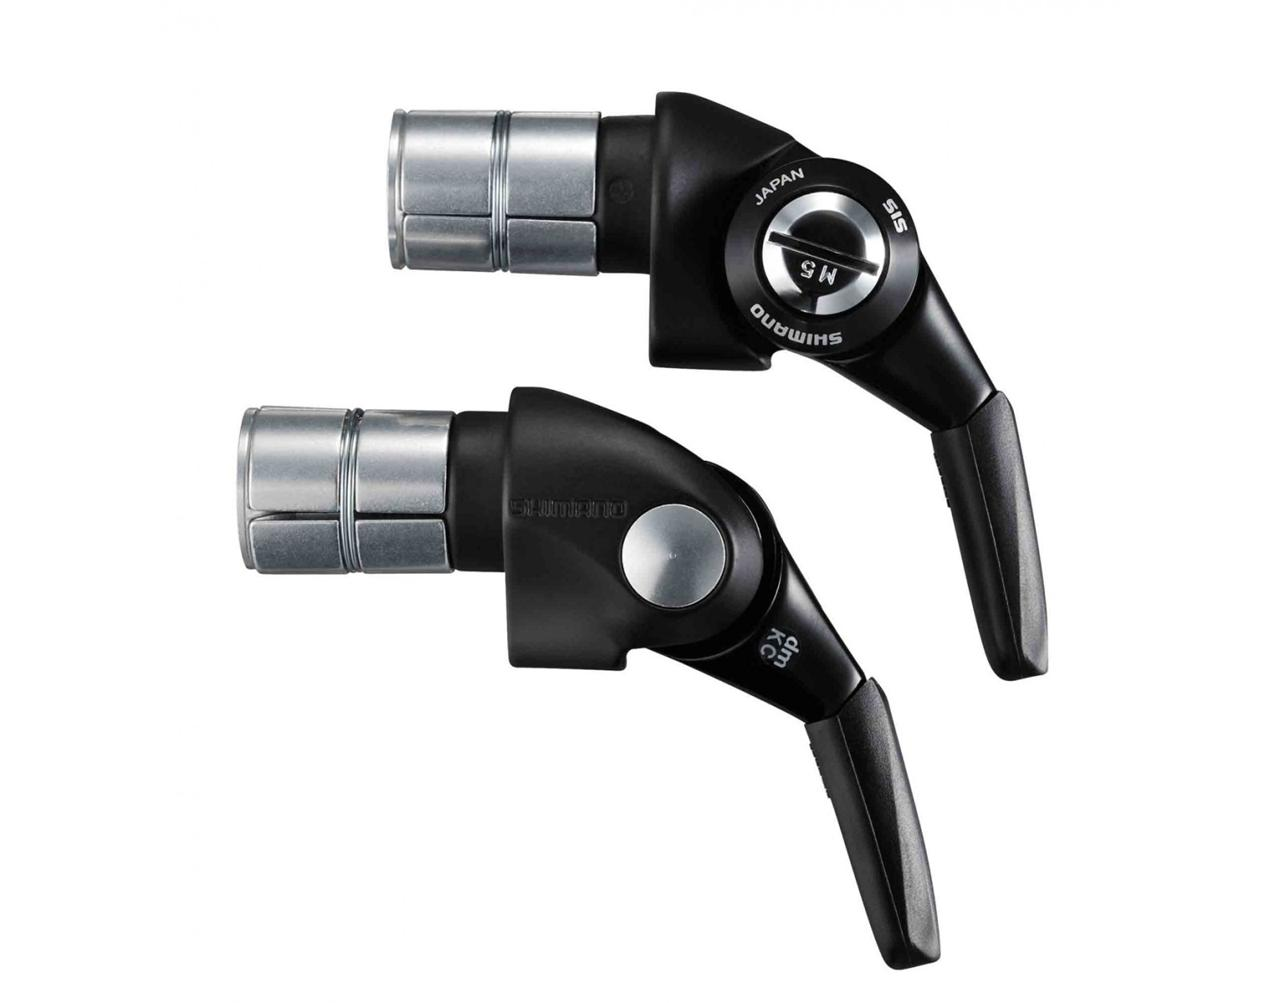 Shimano-SL-BSR1-Bar-End-Shifters-Aero-Bar-11Spd-11-Speed-Dura-Ace-9000-Triathlon